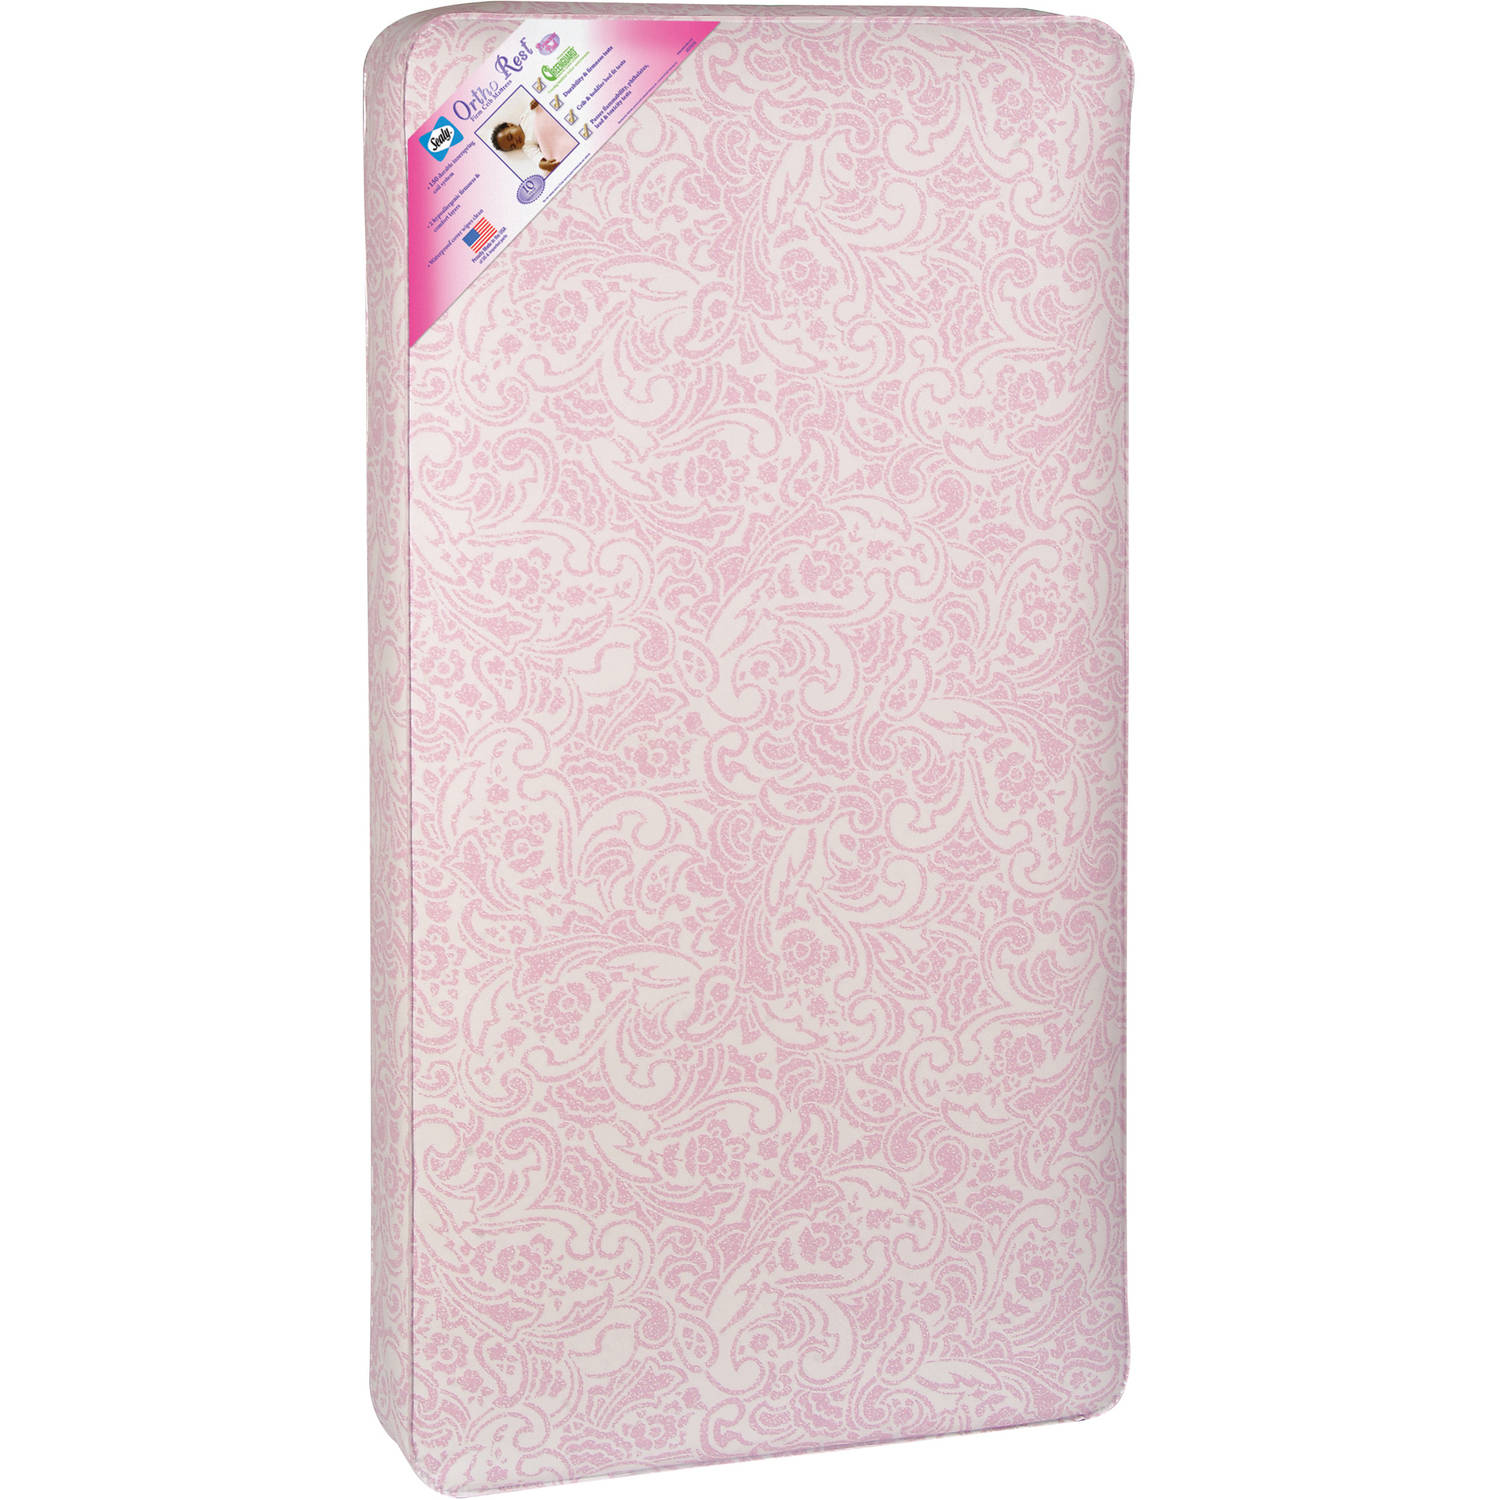 Crib Mattress 150 Coil Sealy Ortho Rest infants and toddlers Pink